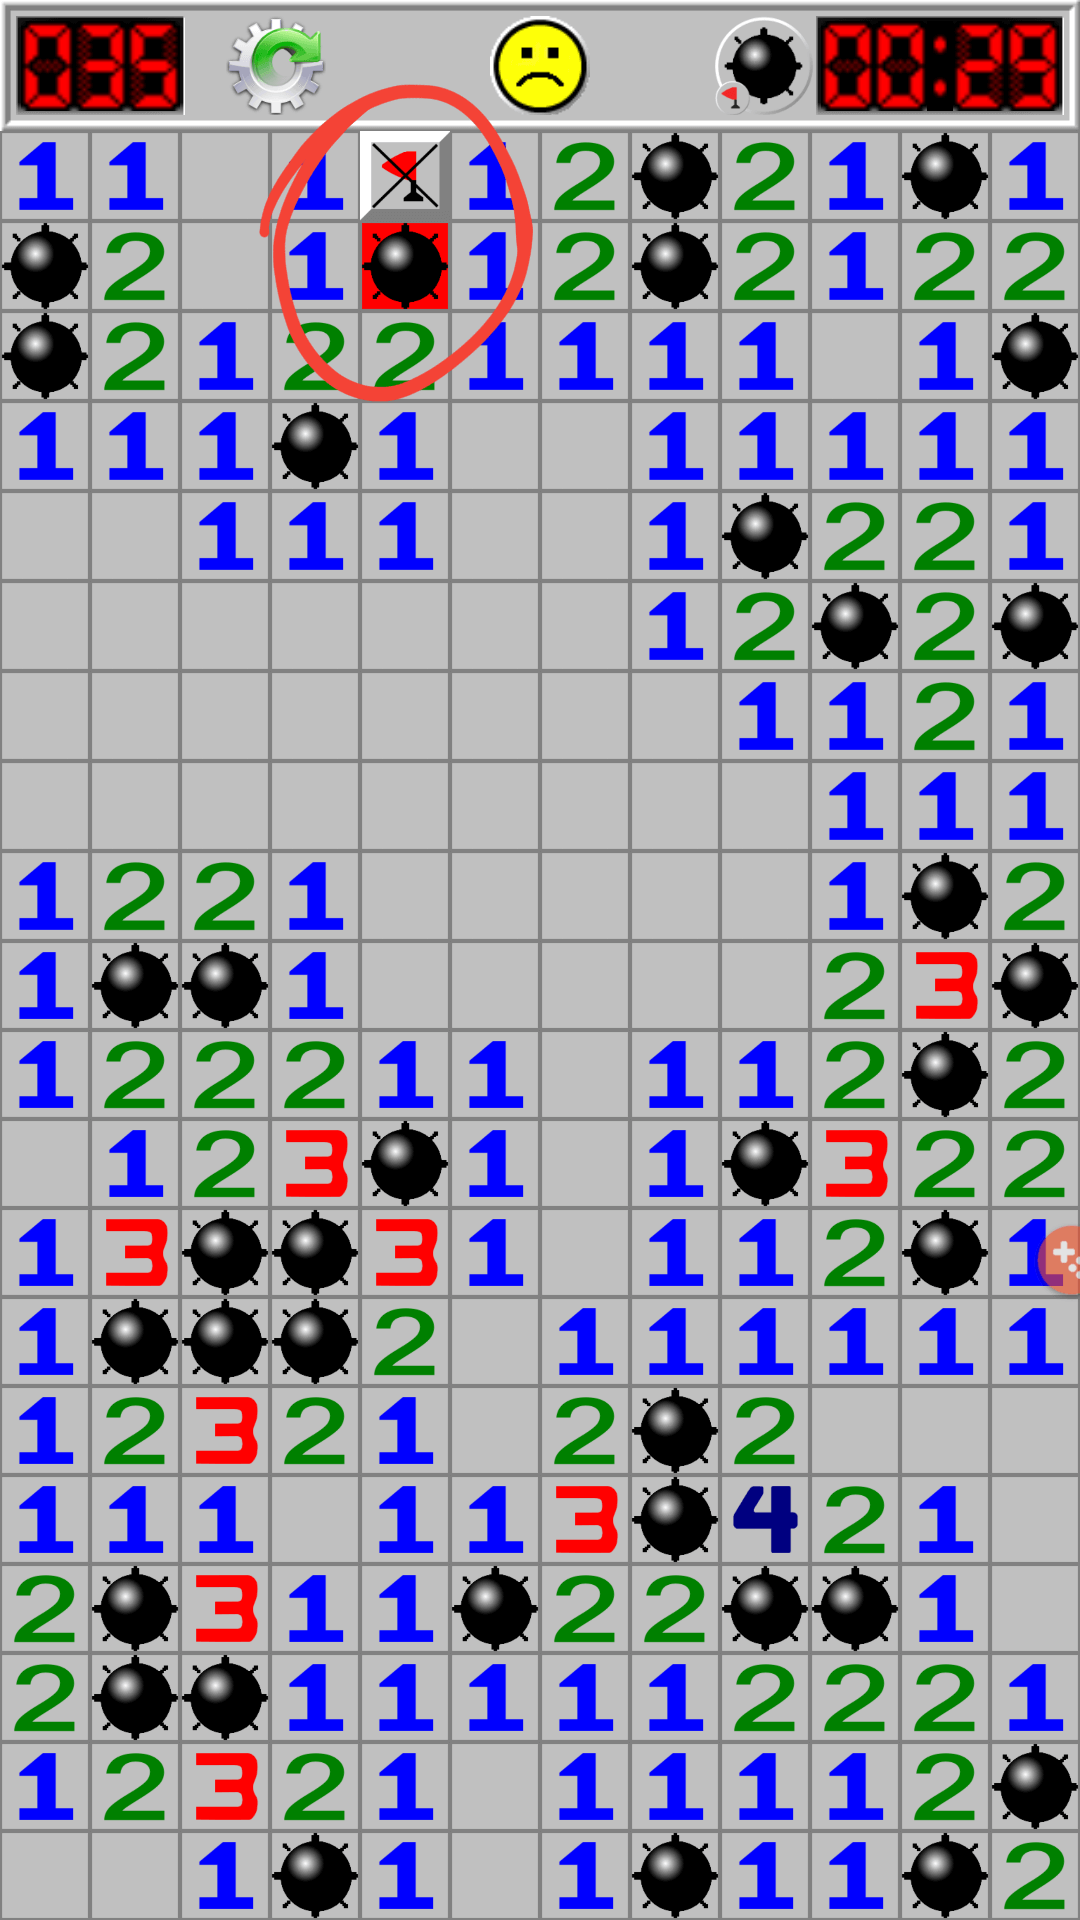 minesweeper tips